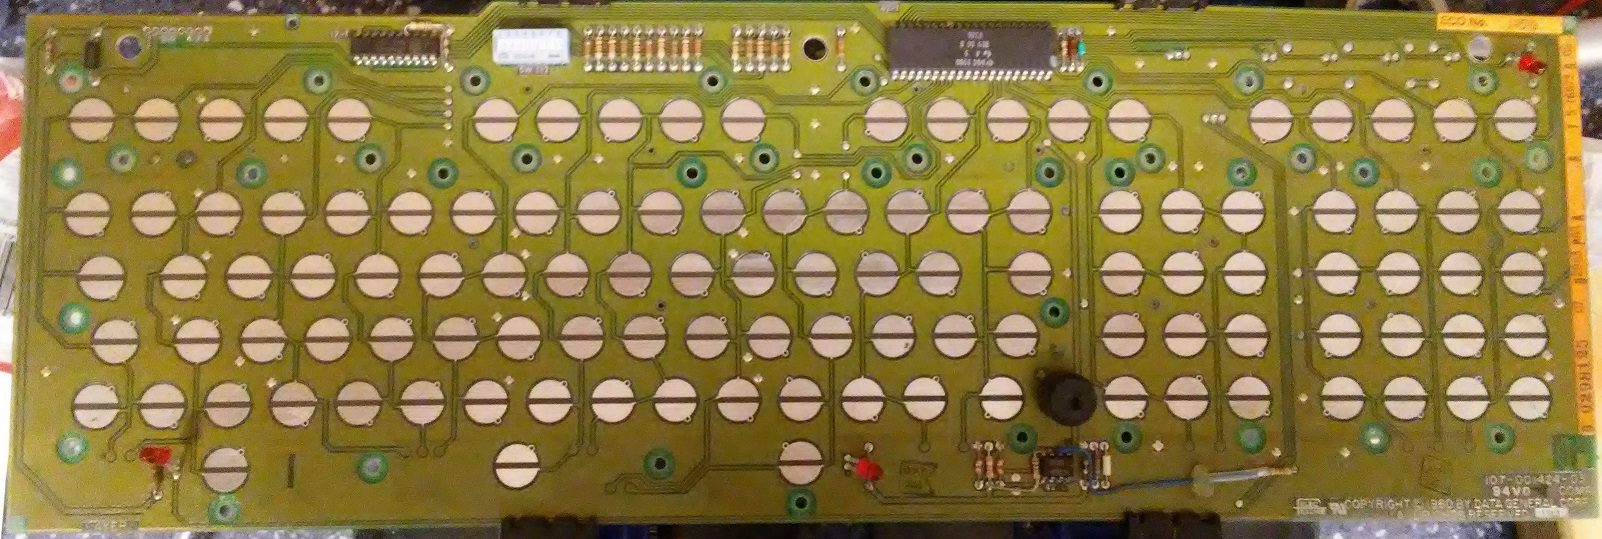 Dasher_PCB_Front_sm.jpg